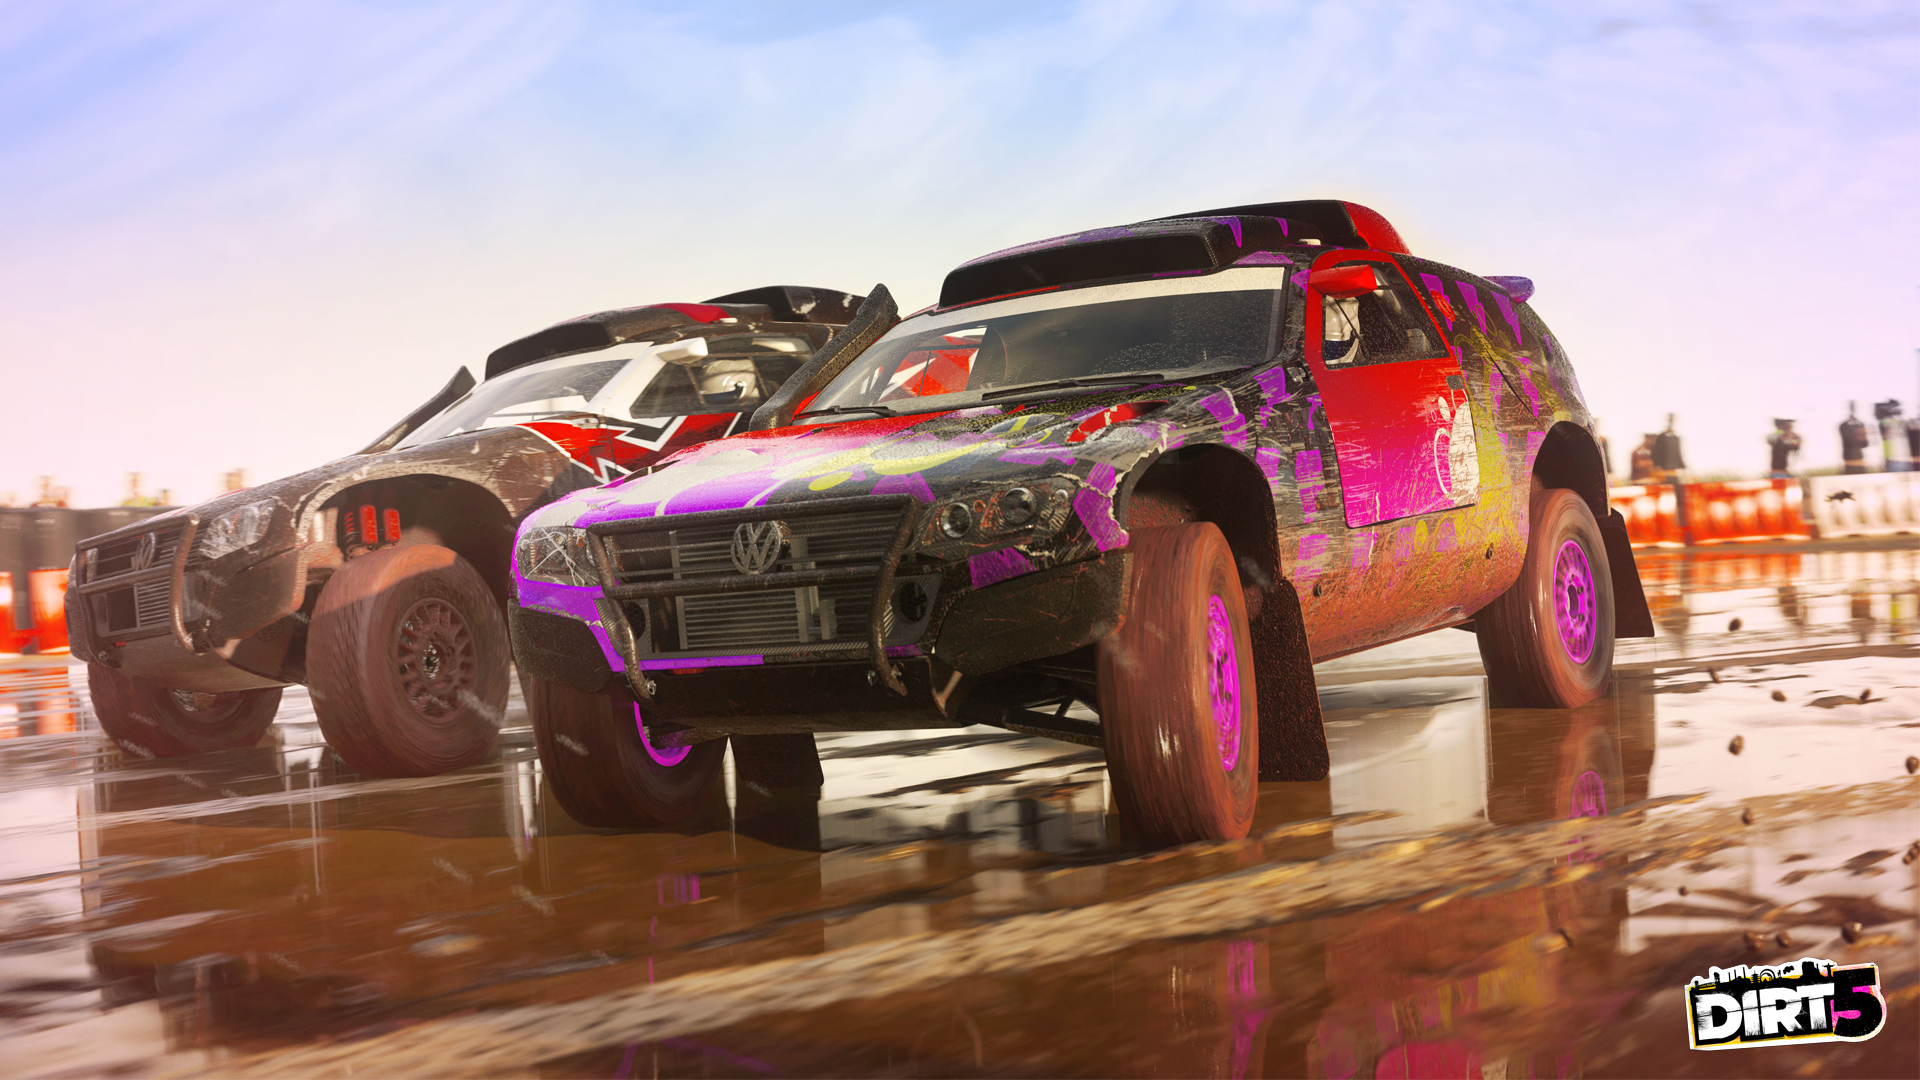 DiRT 5 Q&A - Dishing the DiRT with the Codemasters Folks